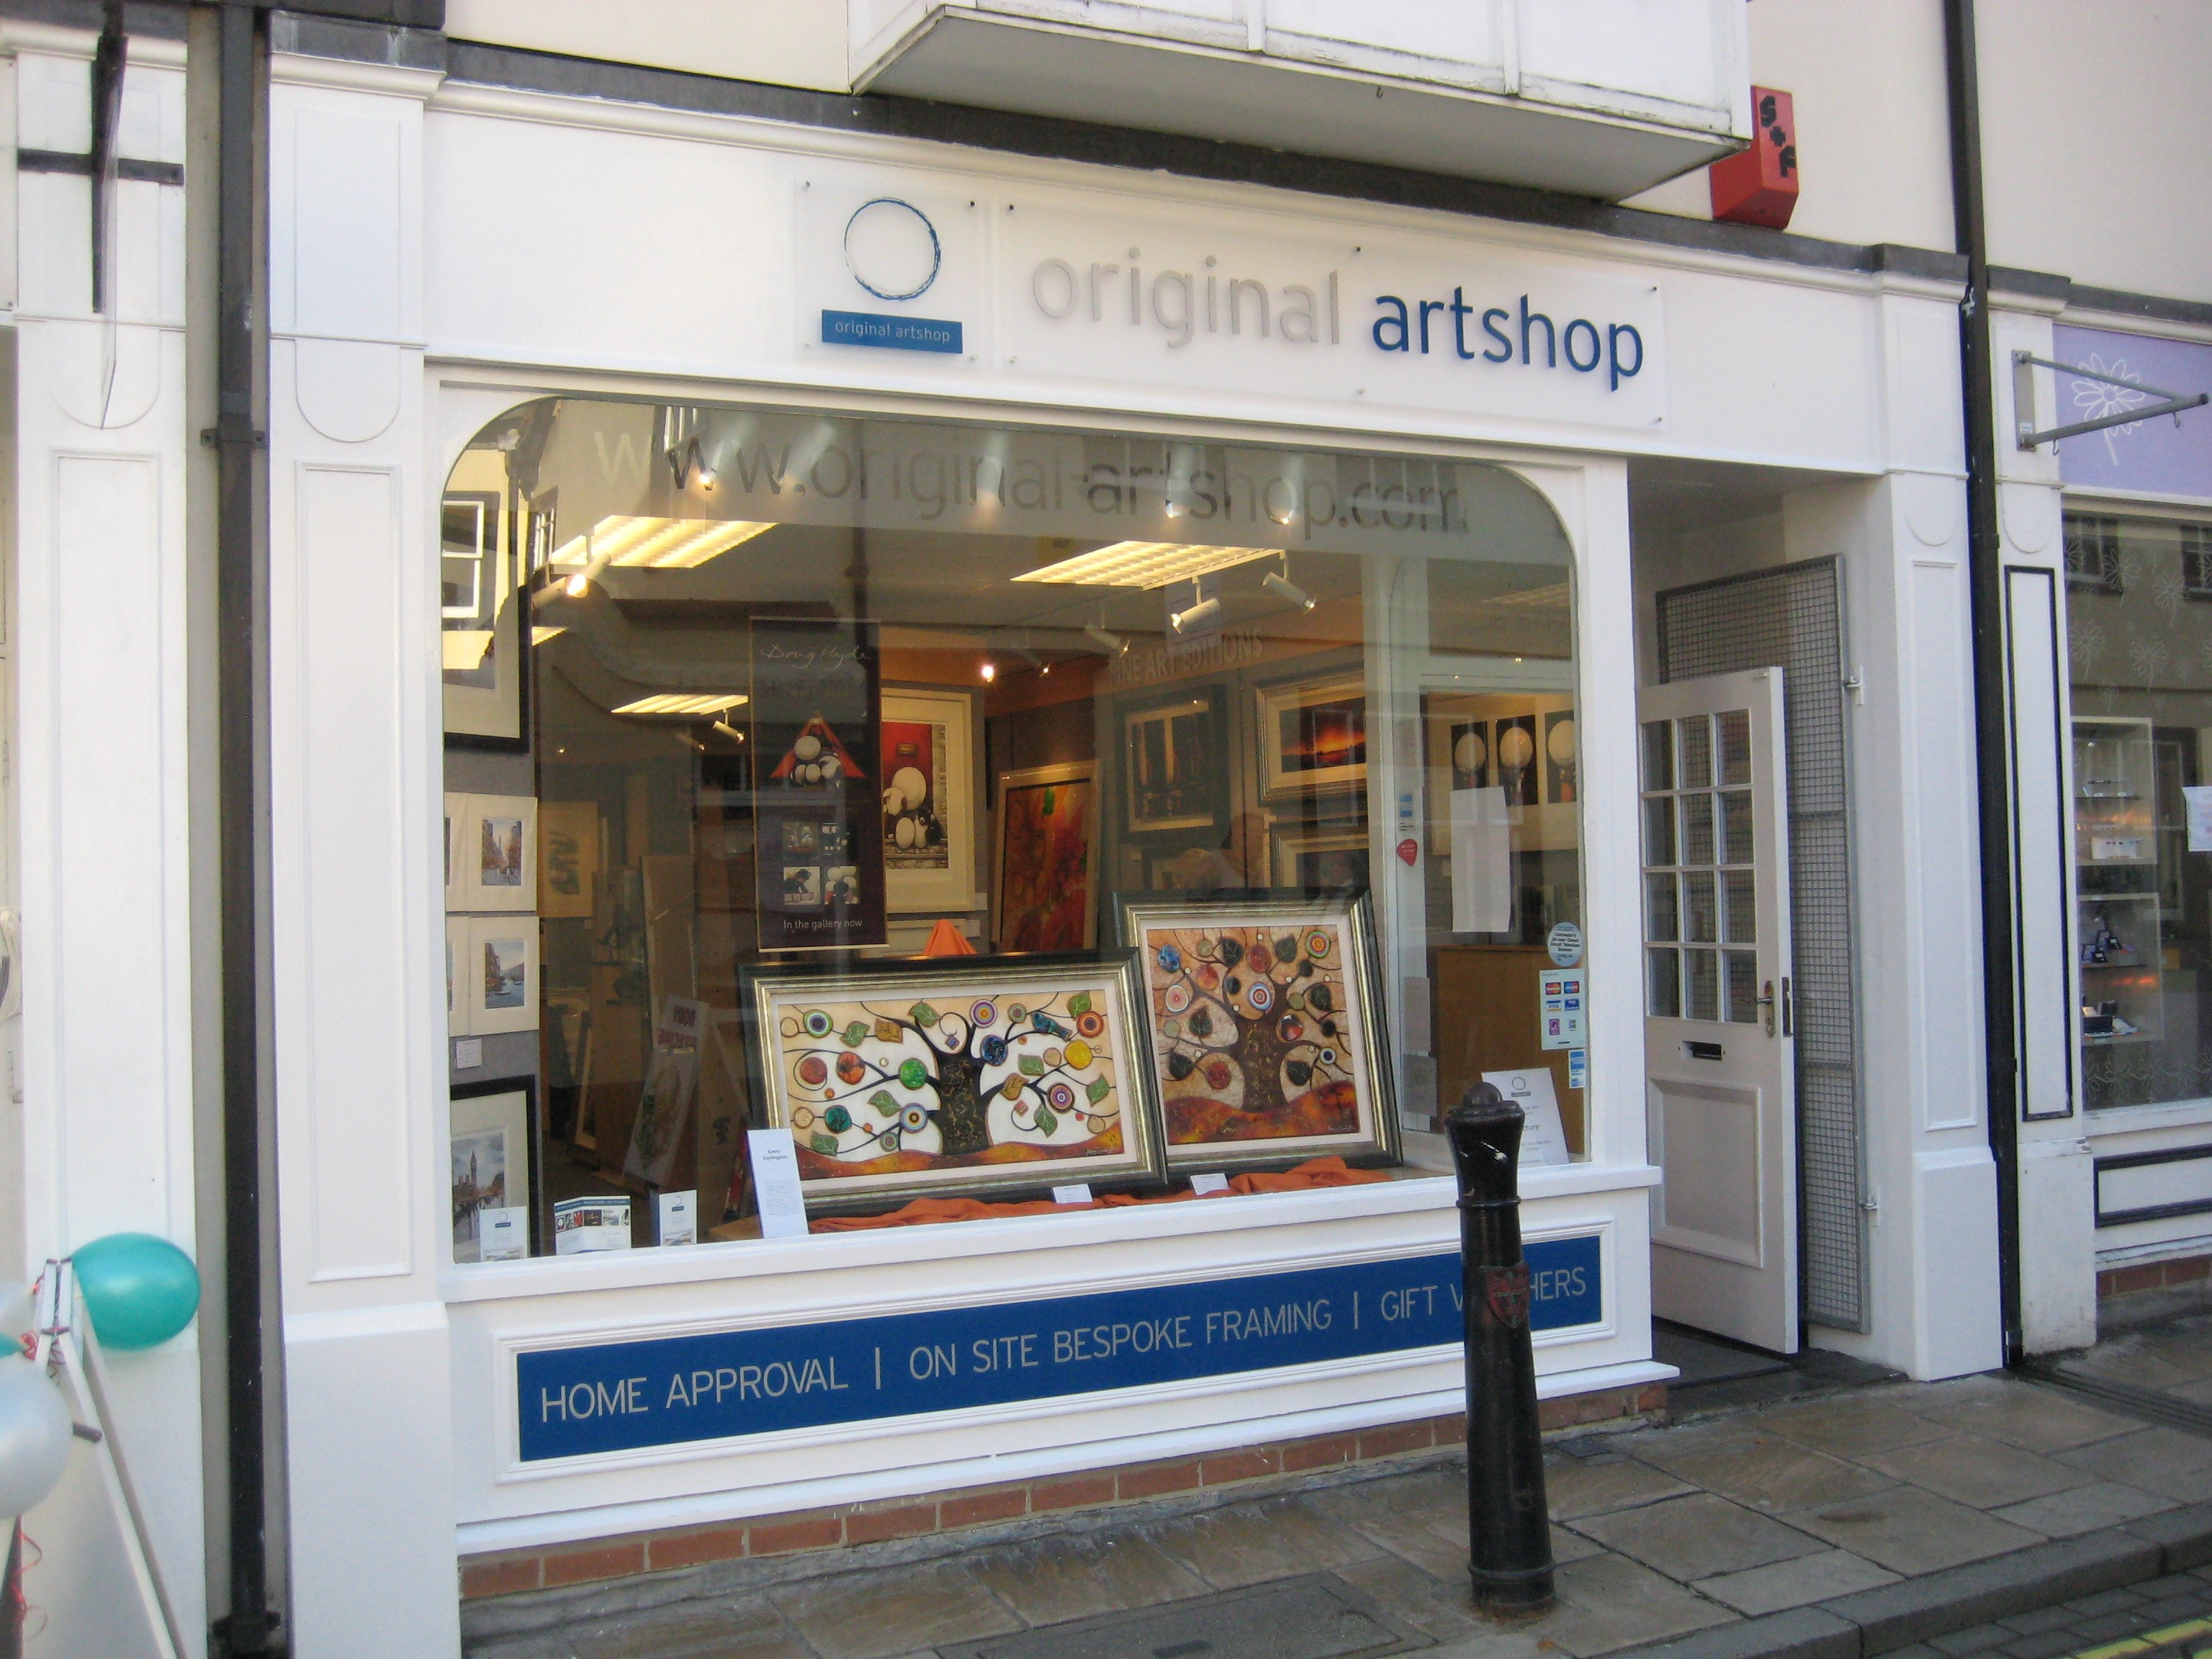 The Original Artshop